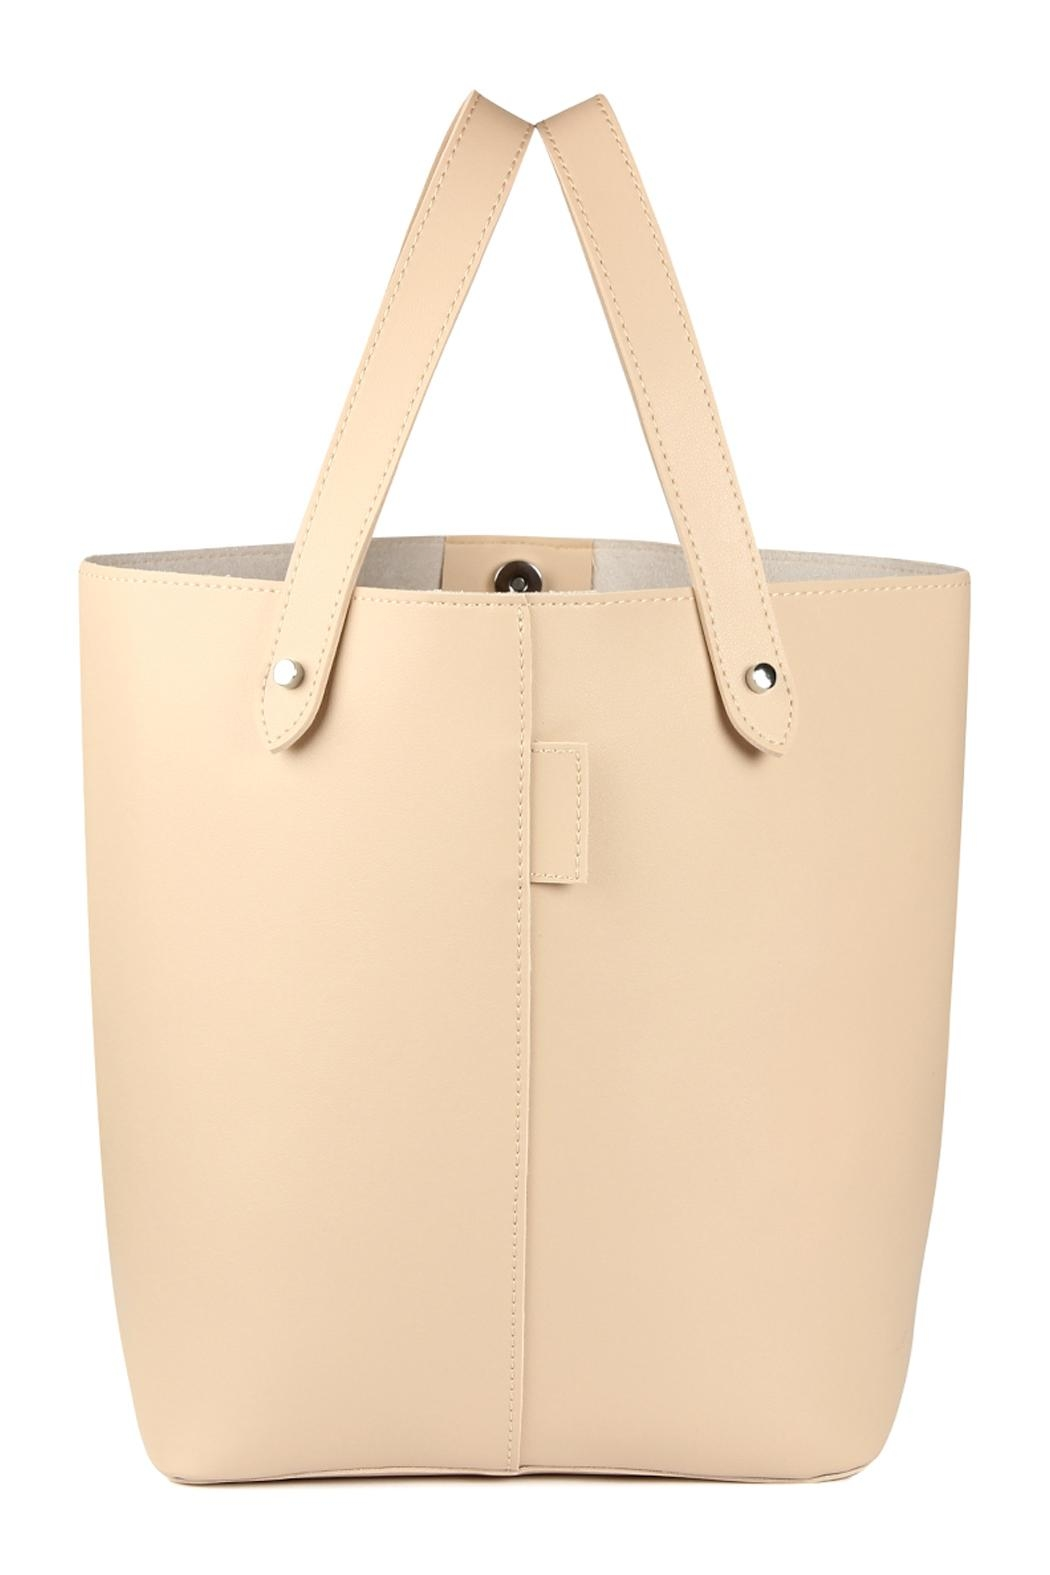 Riah Fashion 2 Way Strap Handle Tote Leather Bag With Pouch Set - Front Full Image